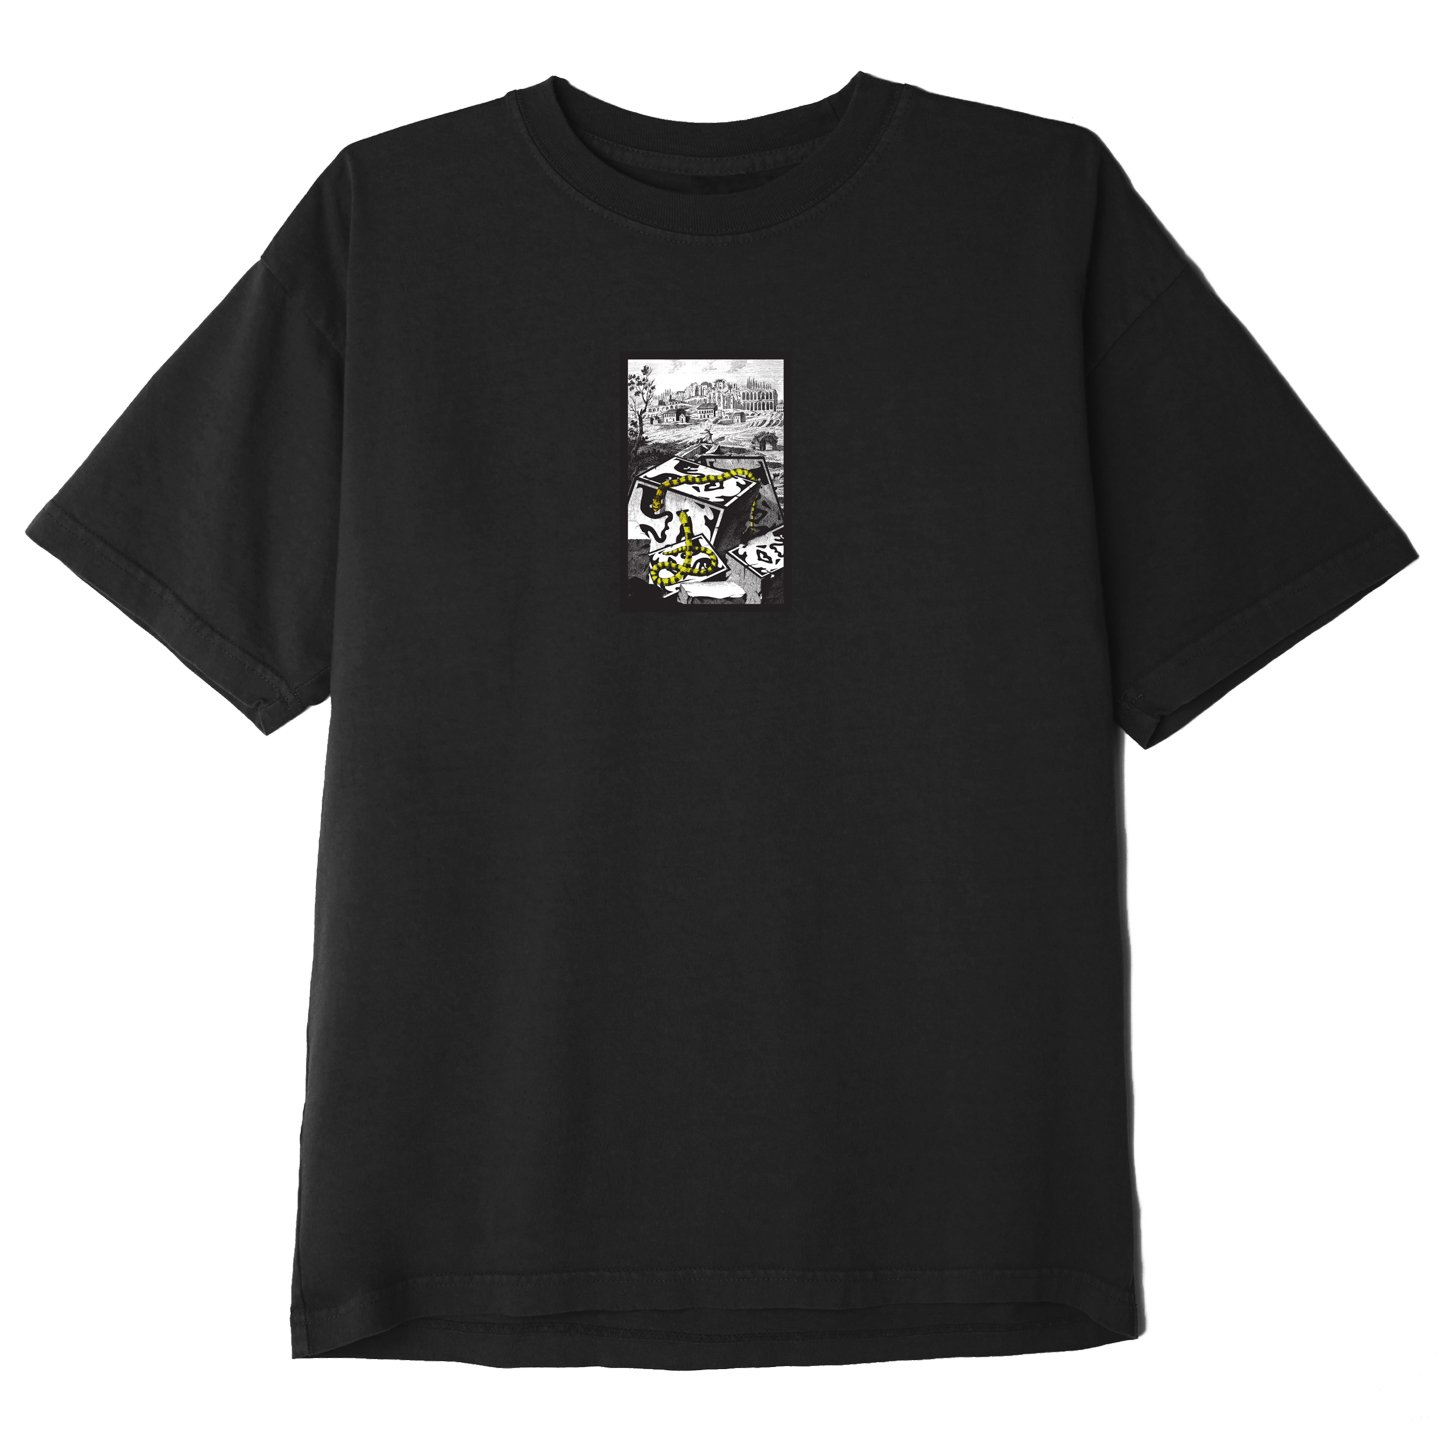 OBEY SNAKES T-SHIRT - BLACK